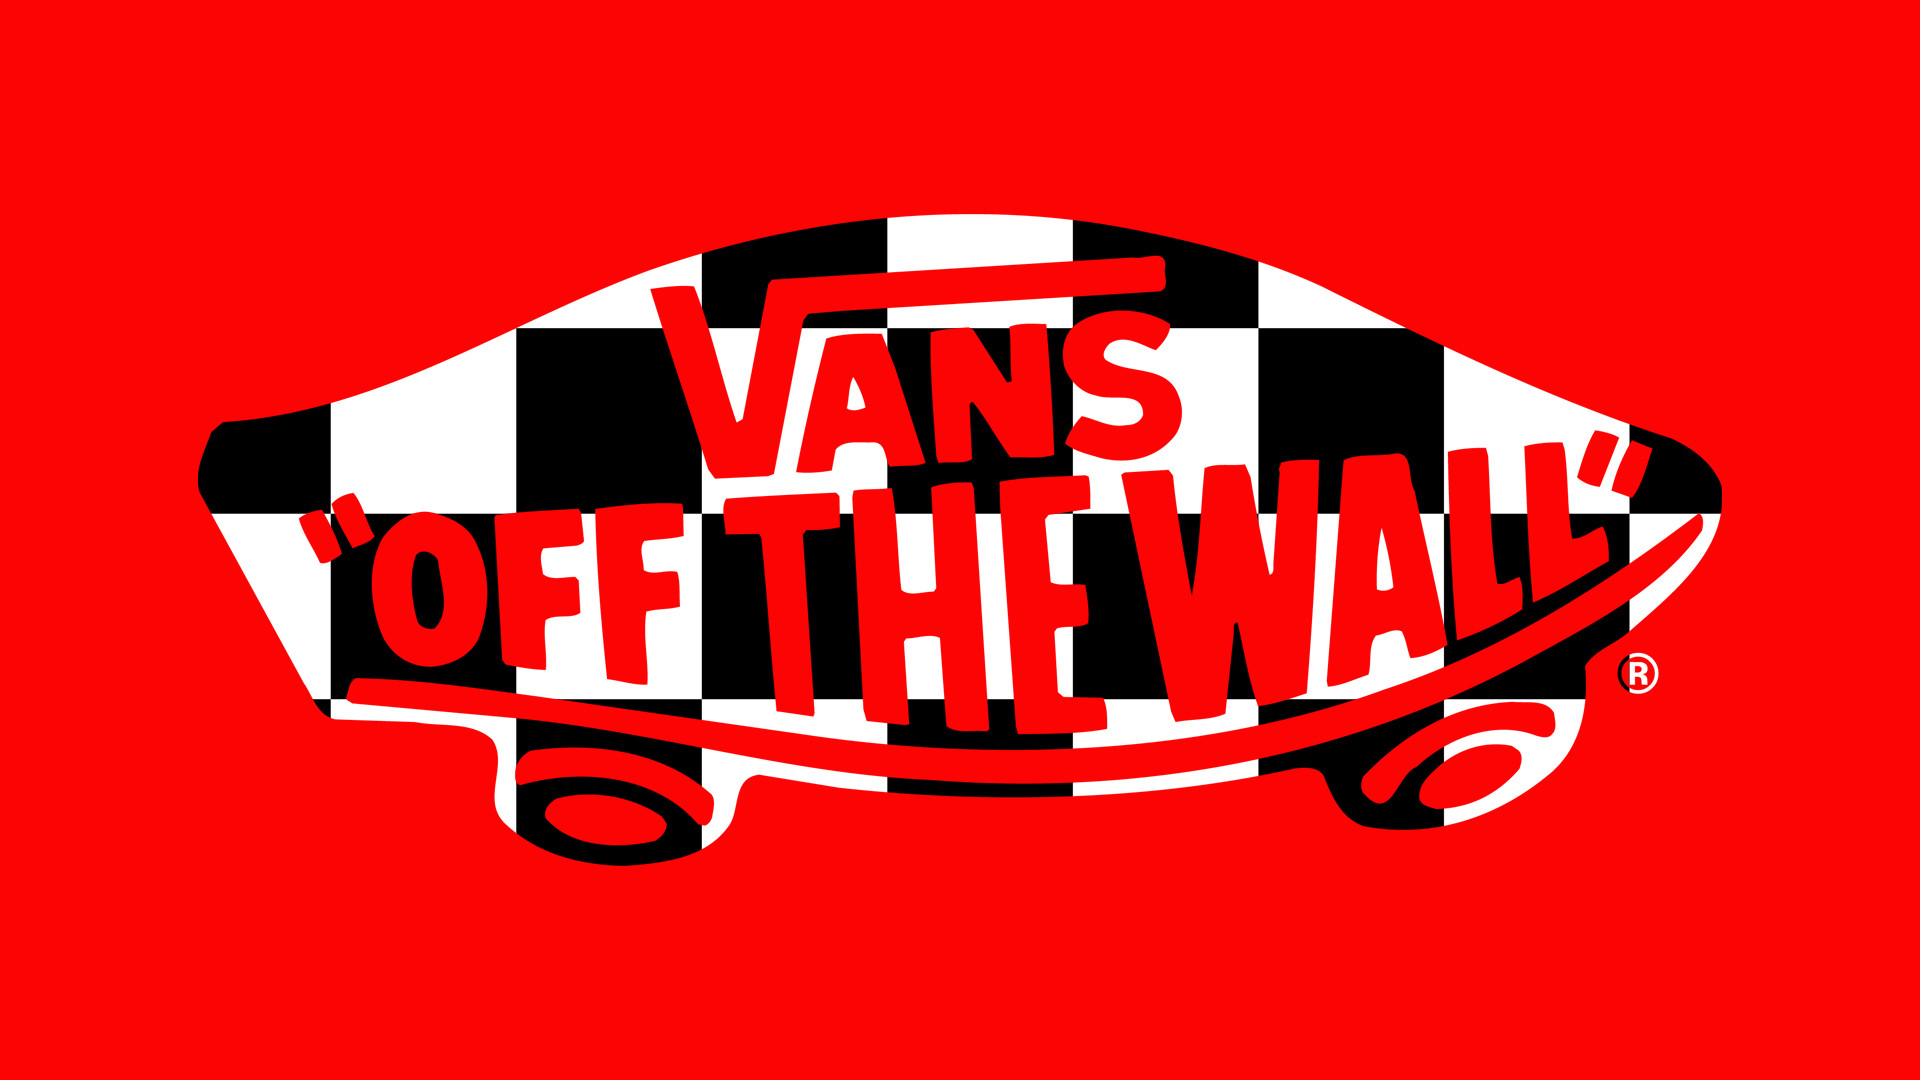 1920x1080 Vans Skateboard Wallpapers High Quality Resolution ...